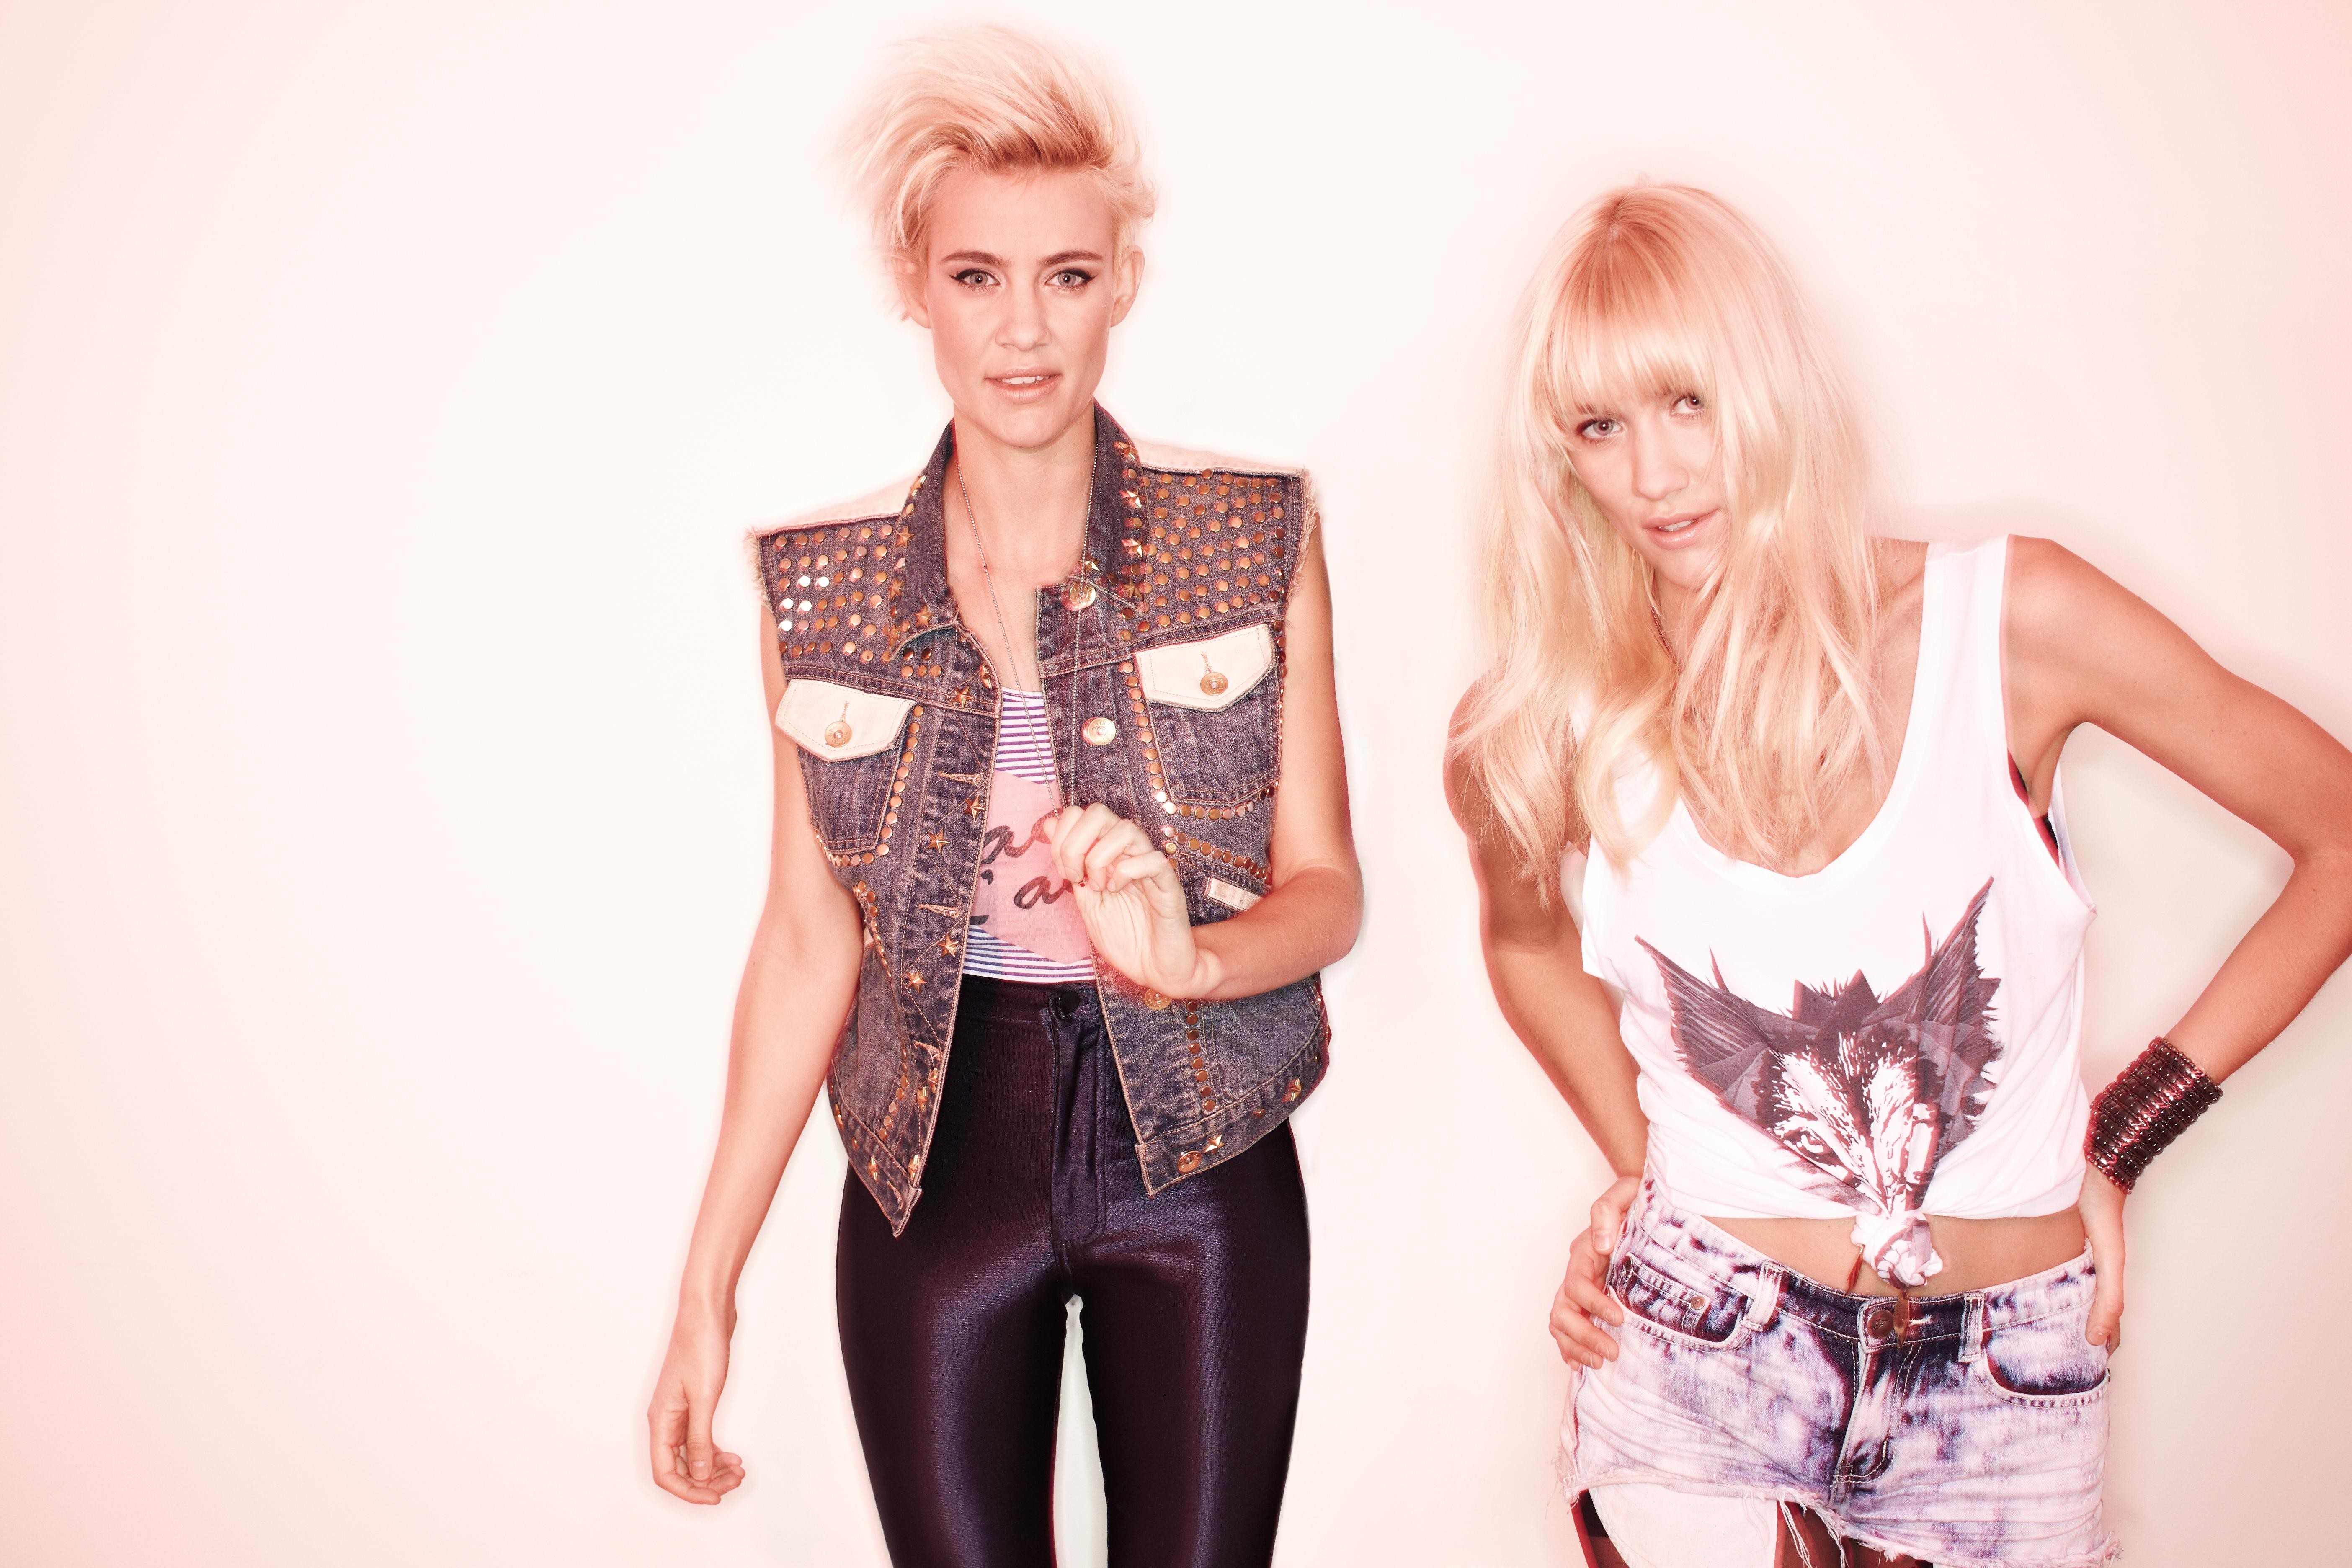 Wallpaper nervo top music artist and bands miriam nervo olivia nervo music 6634 - Ty dolla sign hd wallpaper ...